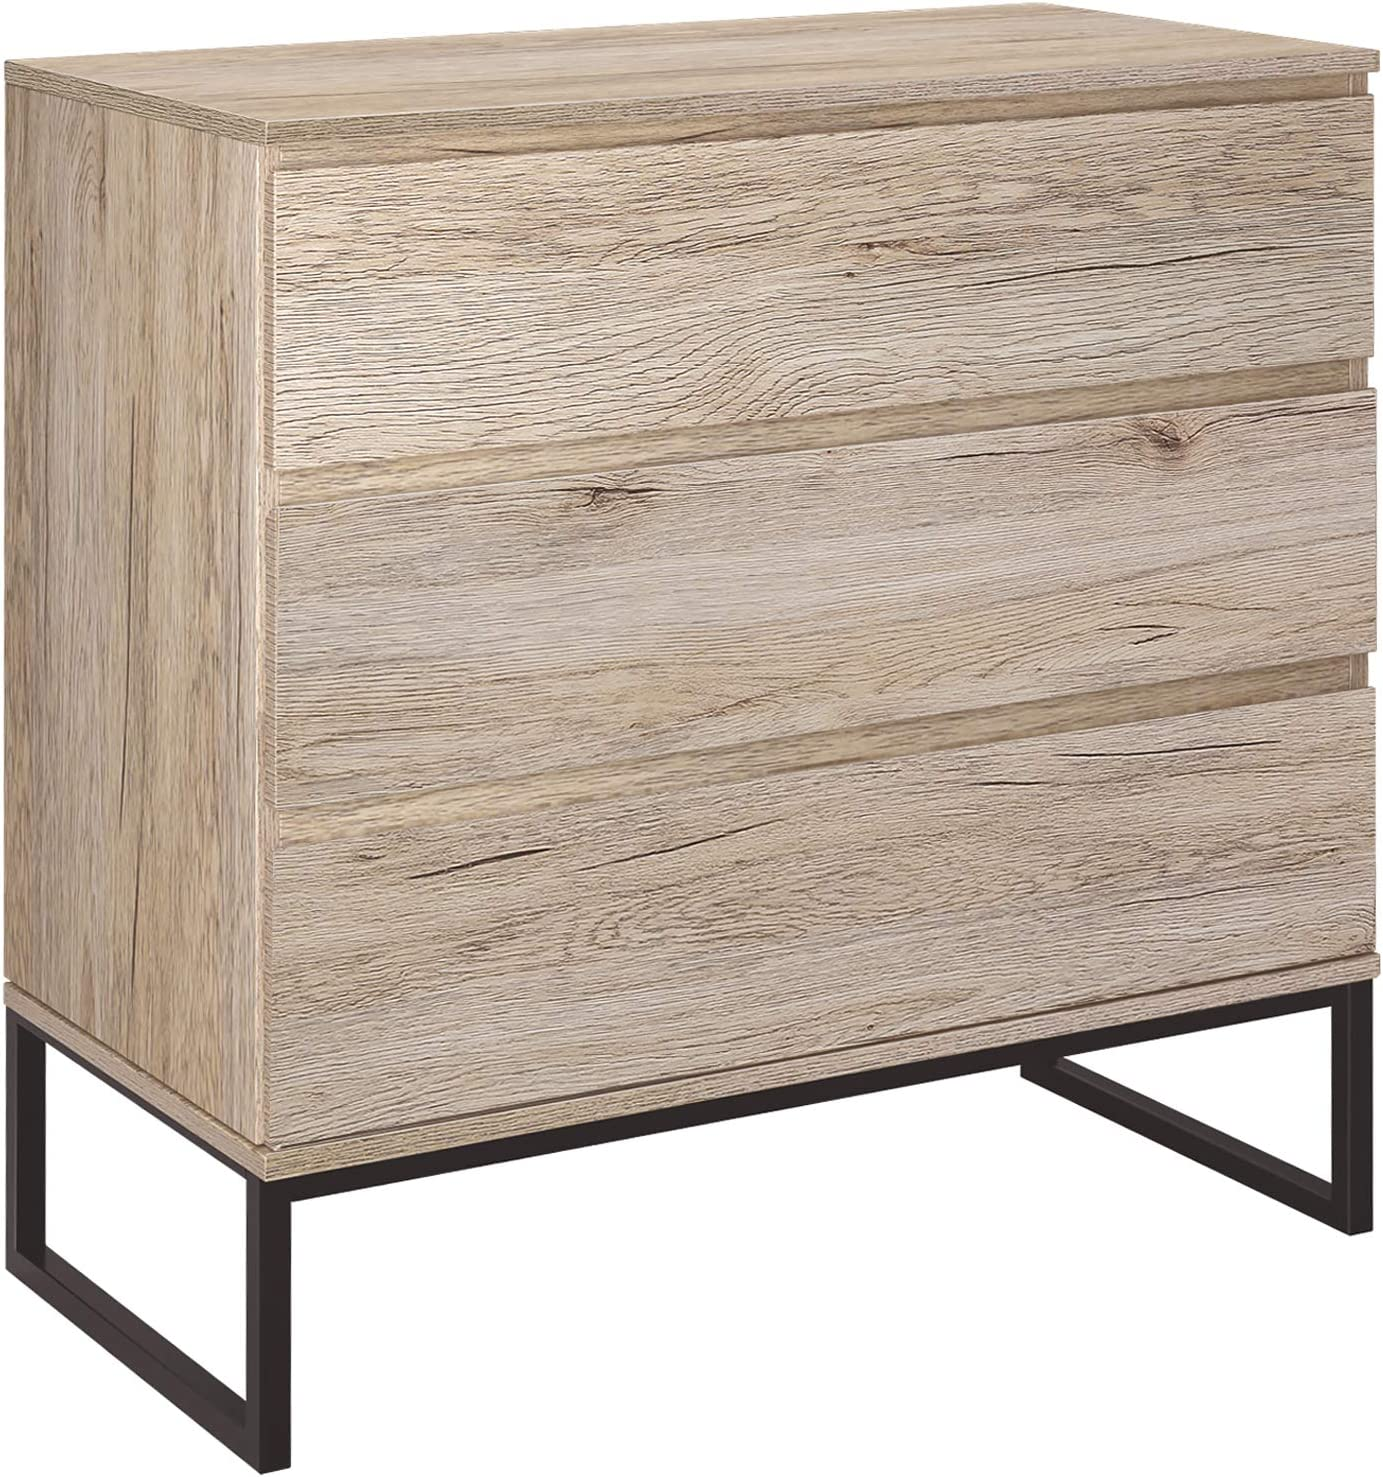 Homfa 3 Drawer Chest, Storage Dresser Cabinet with Steel Legs, Collection Organizer Nightstand Bed Sofa Sideboard Buffet Cabinet, Accent Decor Furniture for Office Home